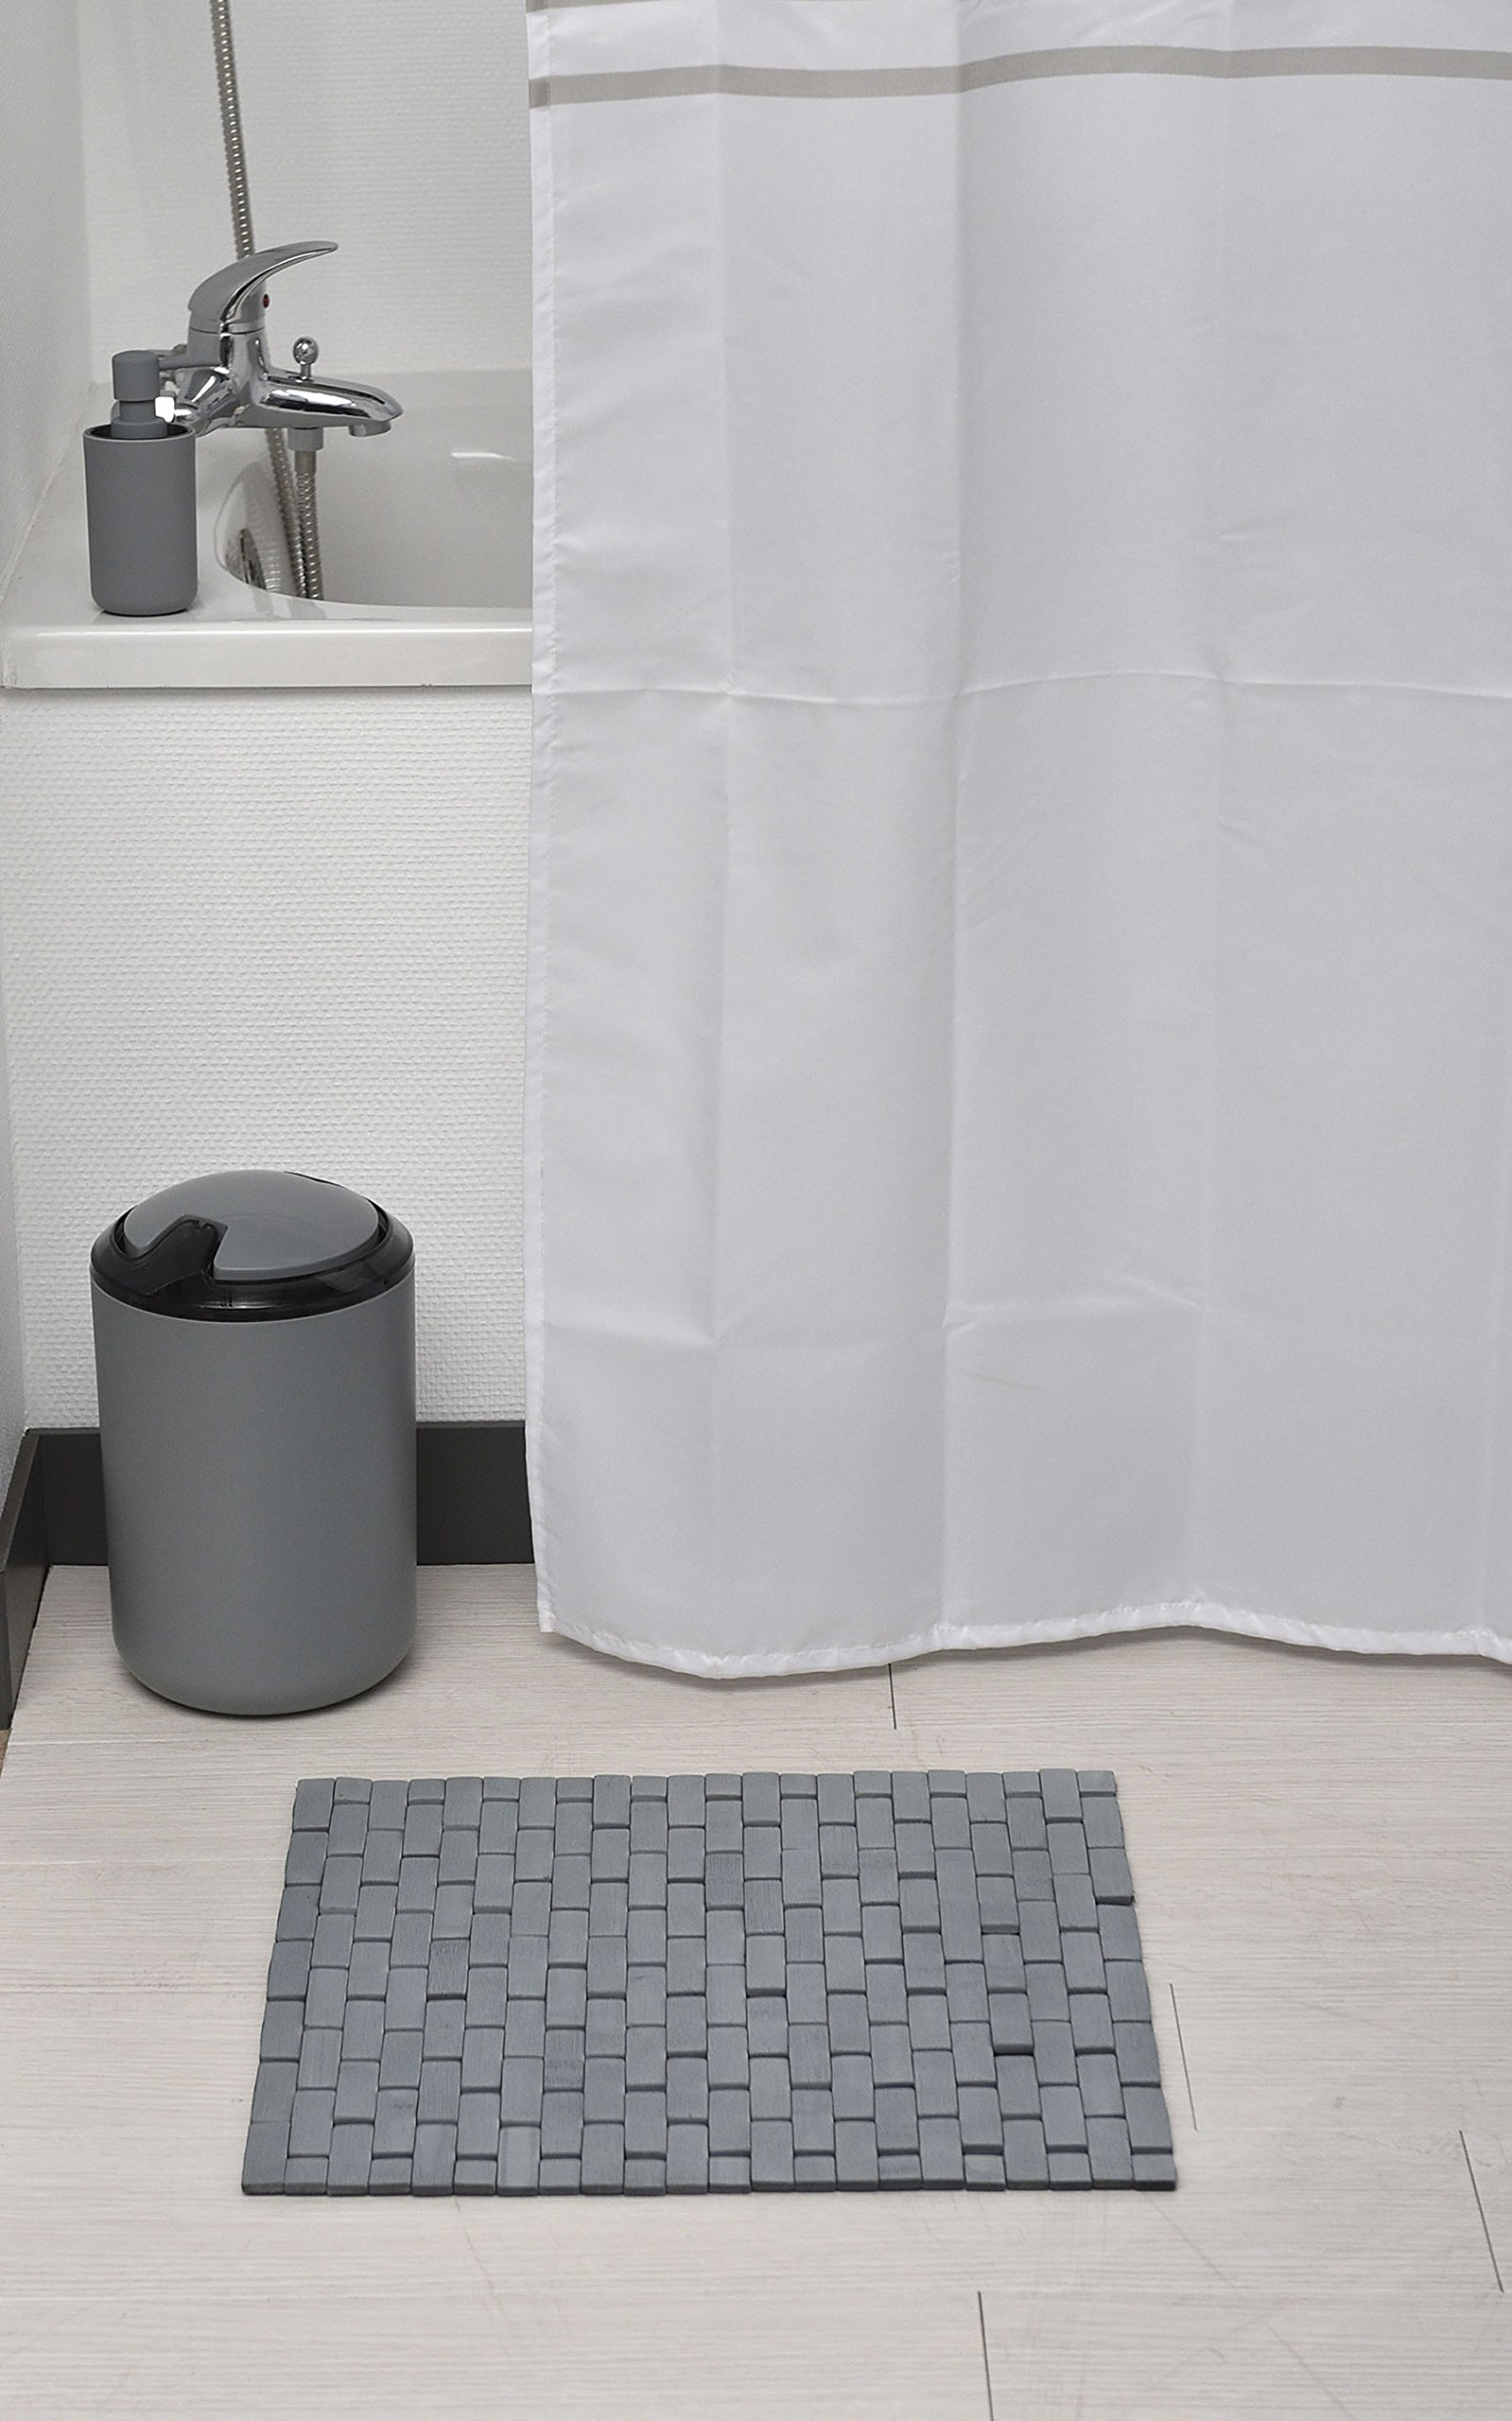 EVIDECO Bathroom Bamboo Slats Roll-up Foldable Shower Door Rug, 18'' L X 18'' W x 0.4'' H(45 x 45 Cm), Gray by EVIDECO (Image #2)